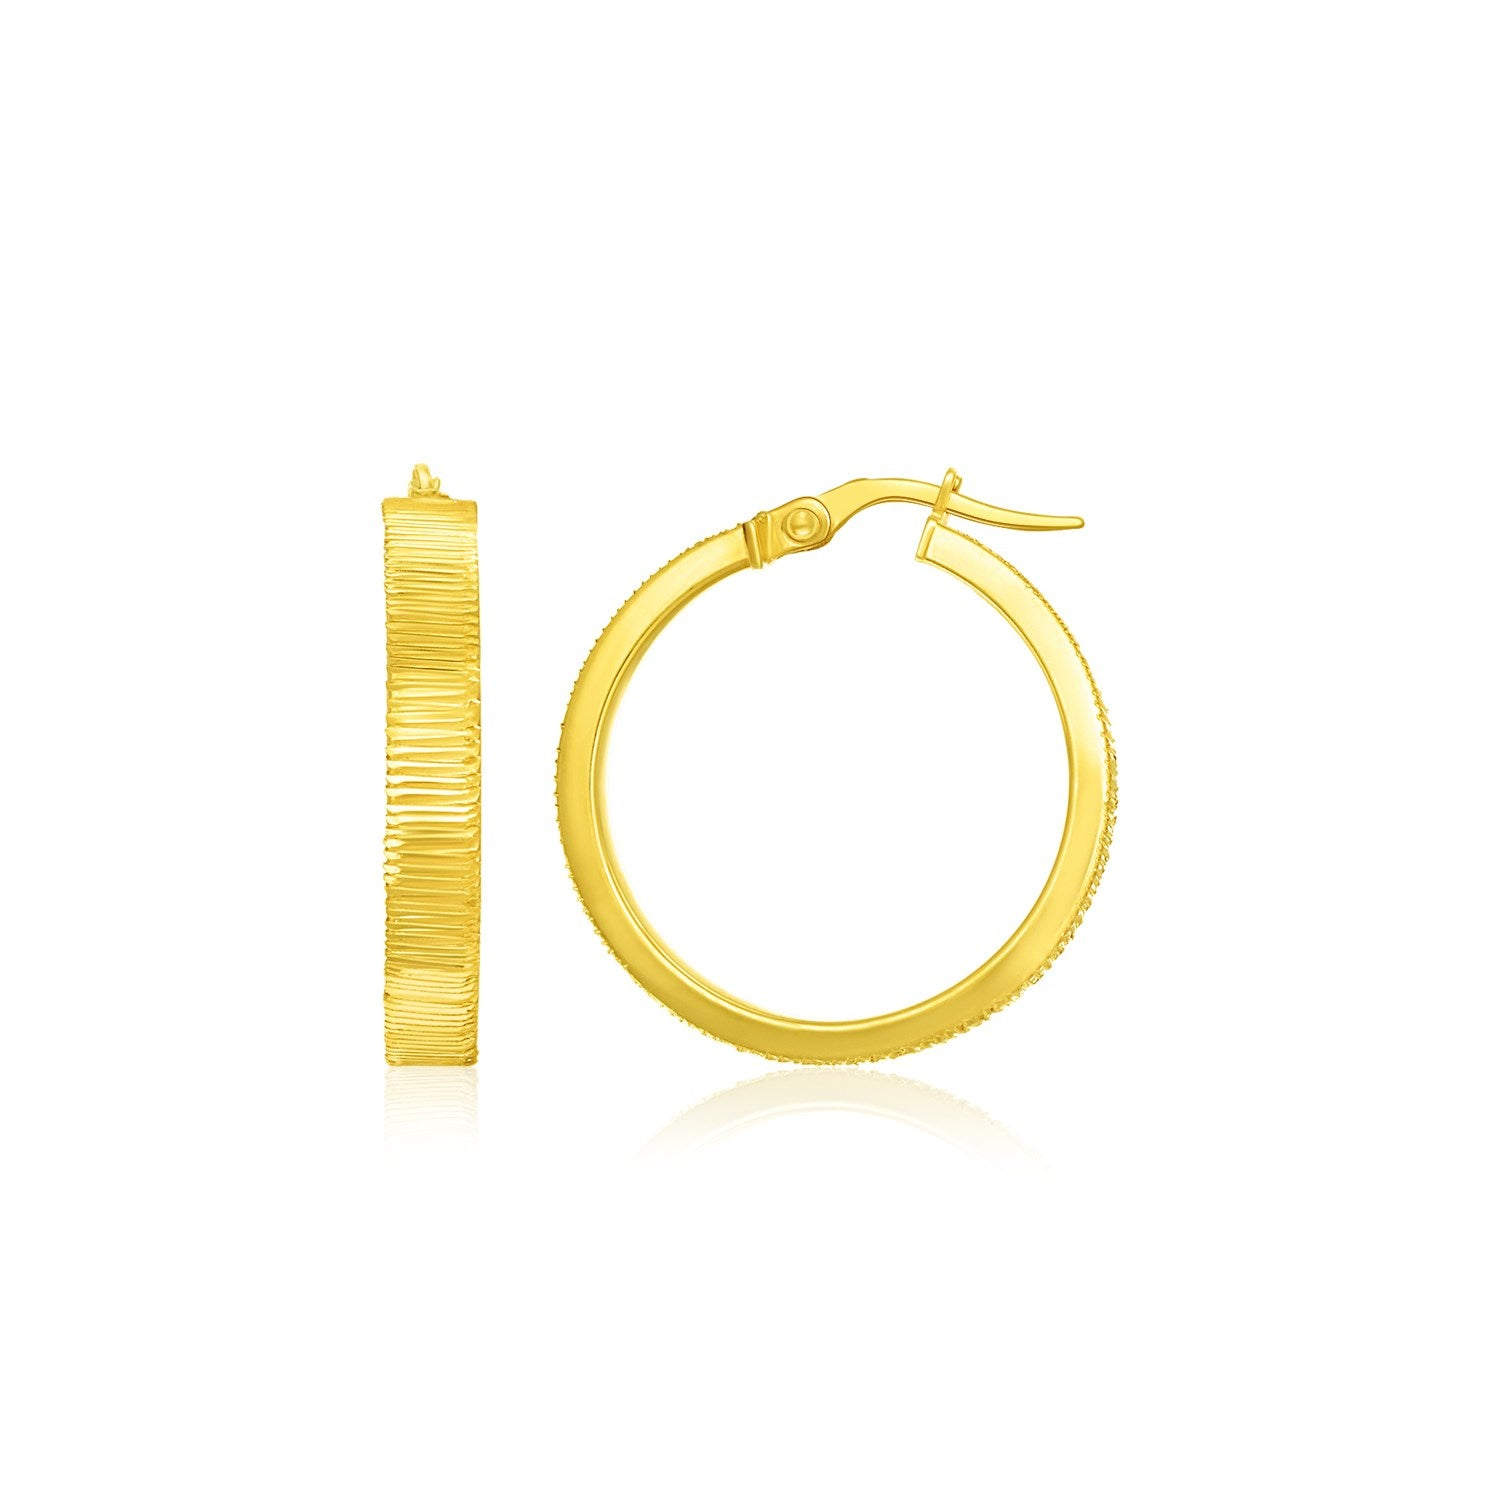 14K Yellow Gold Hoop Earrings with Textured Style